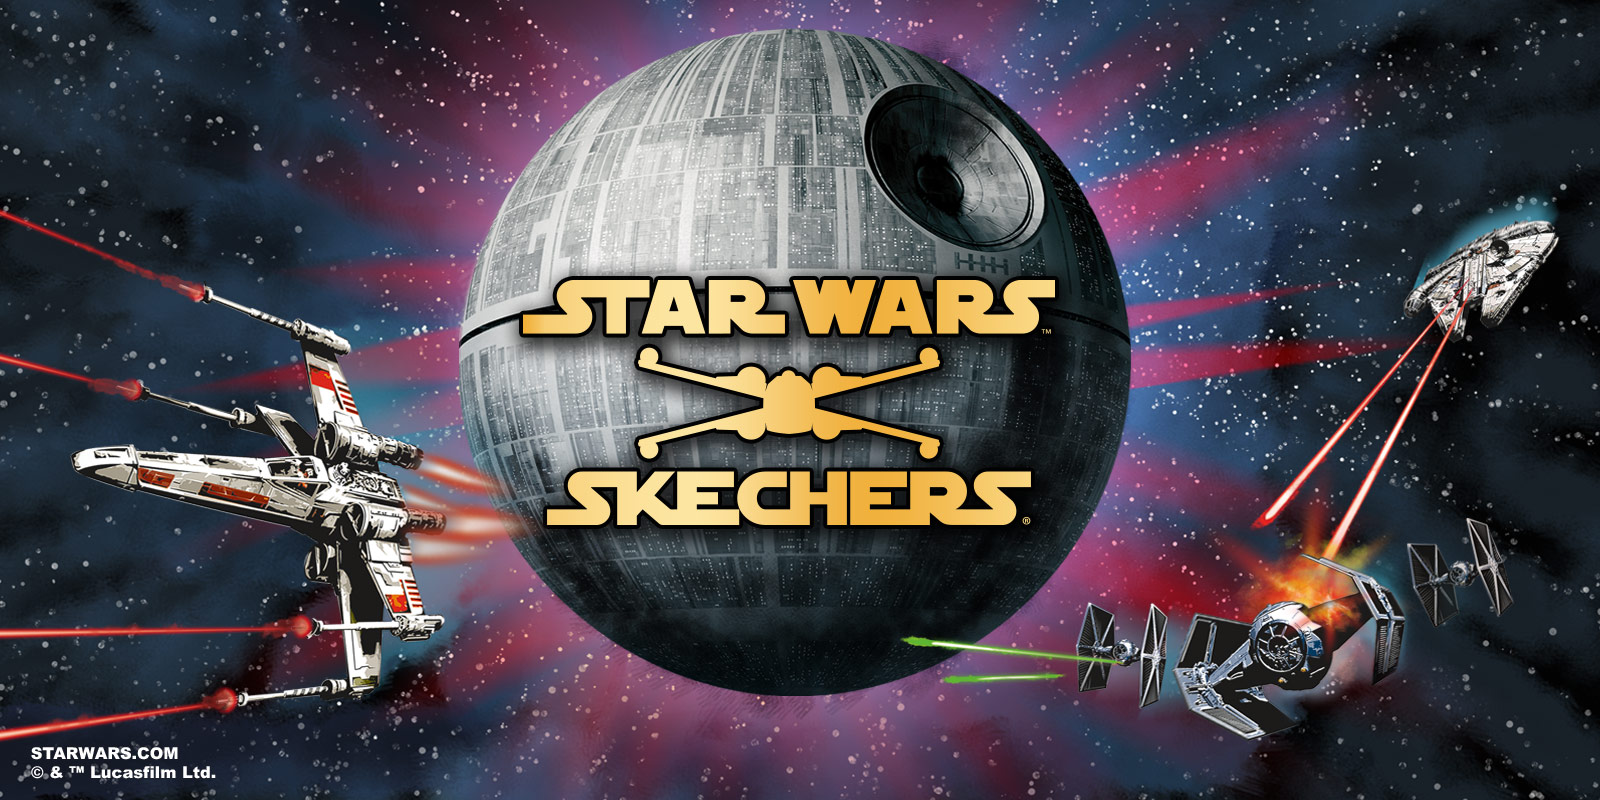 Find Skechers Star Wars shoes for boys on Skechers.com.  Classic and Force Awakens